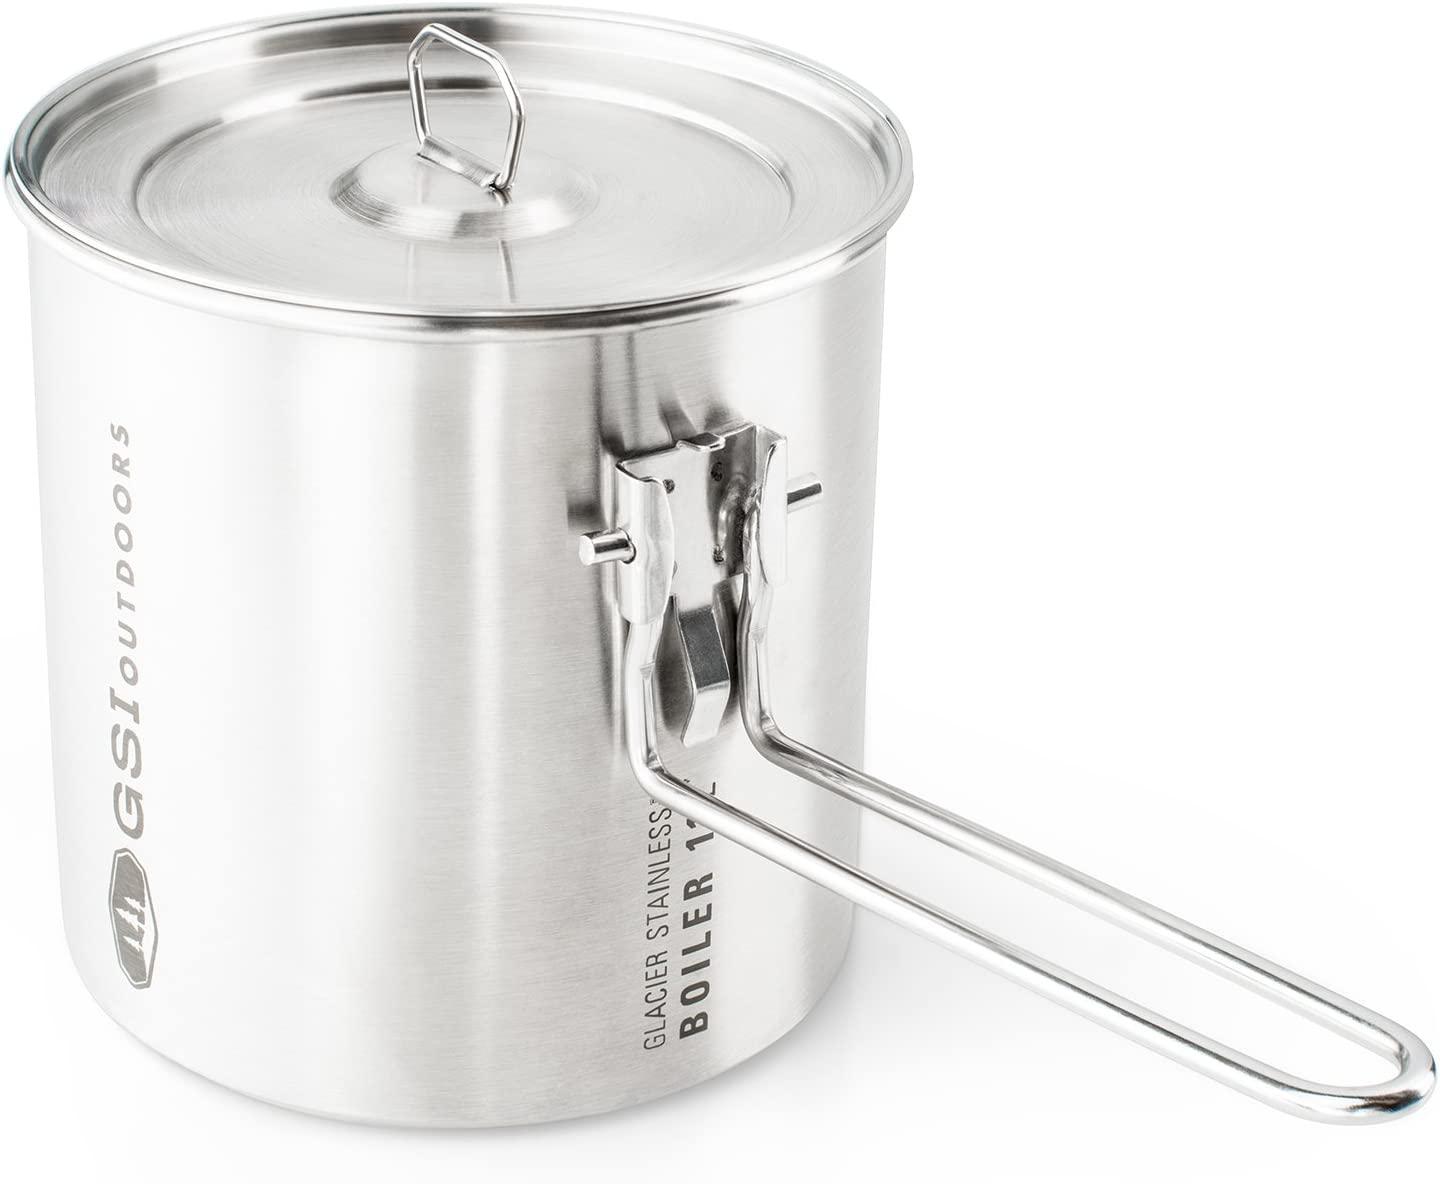 GSI Outdoors Glacier Stainless 1.1 L Boiler for Ultralight Backpacking and Camping